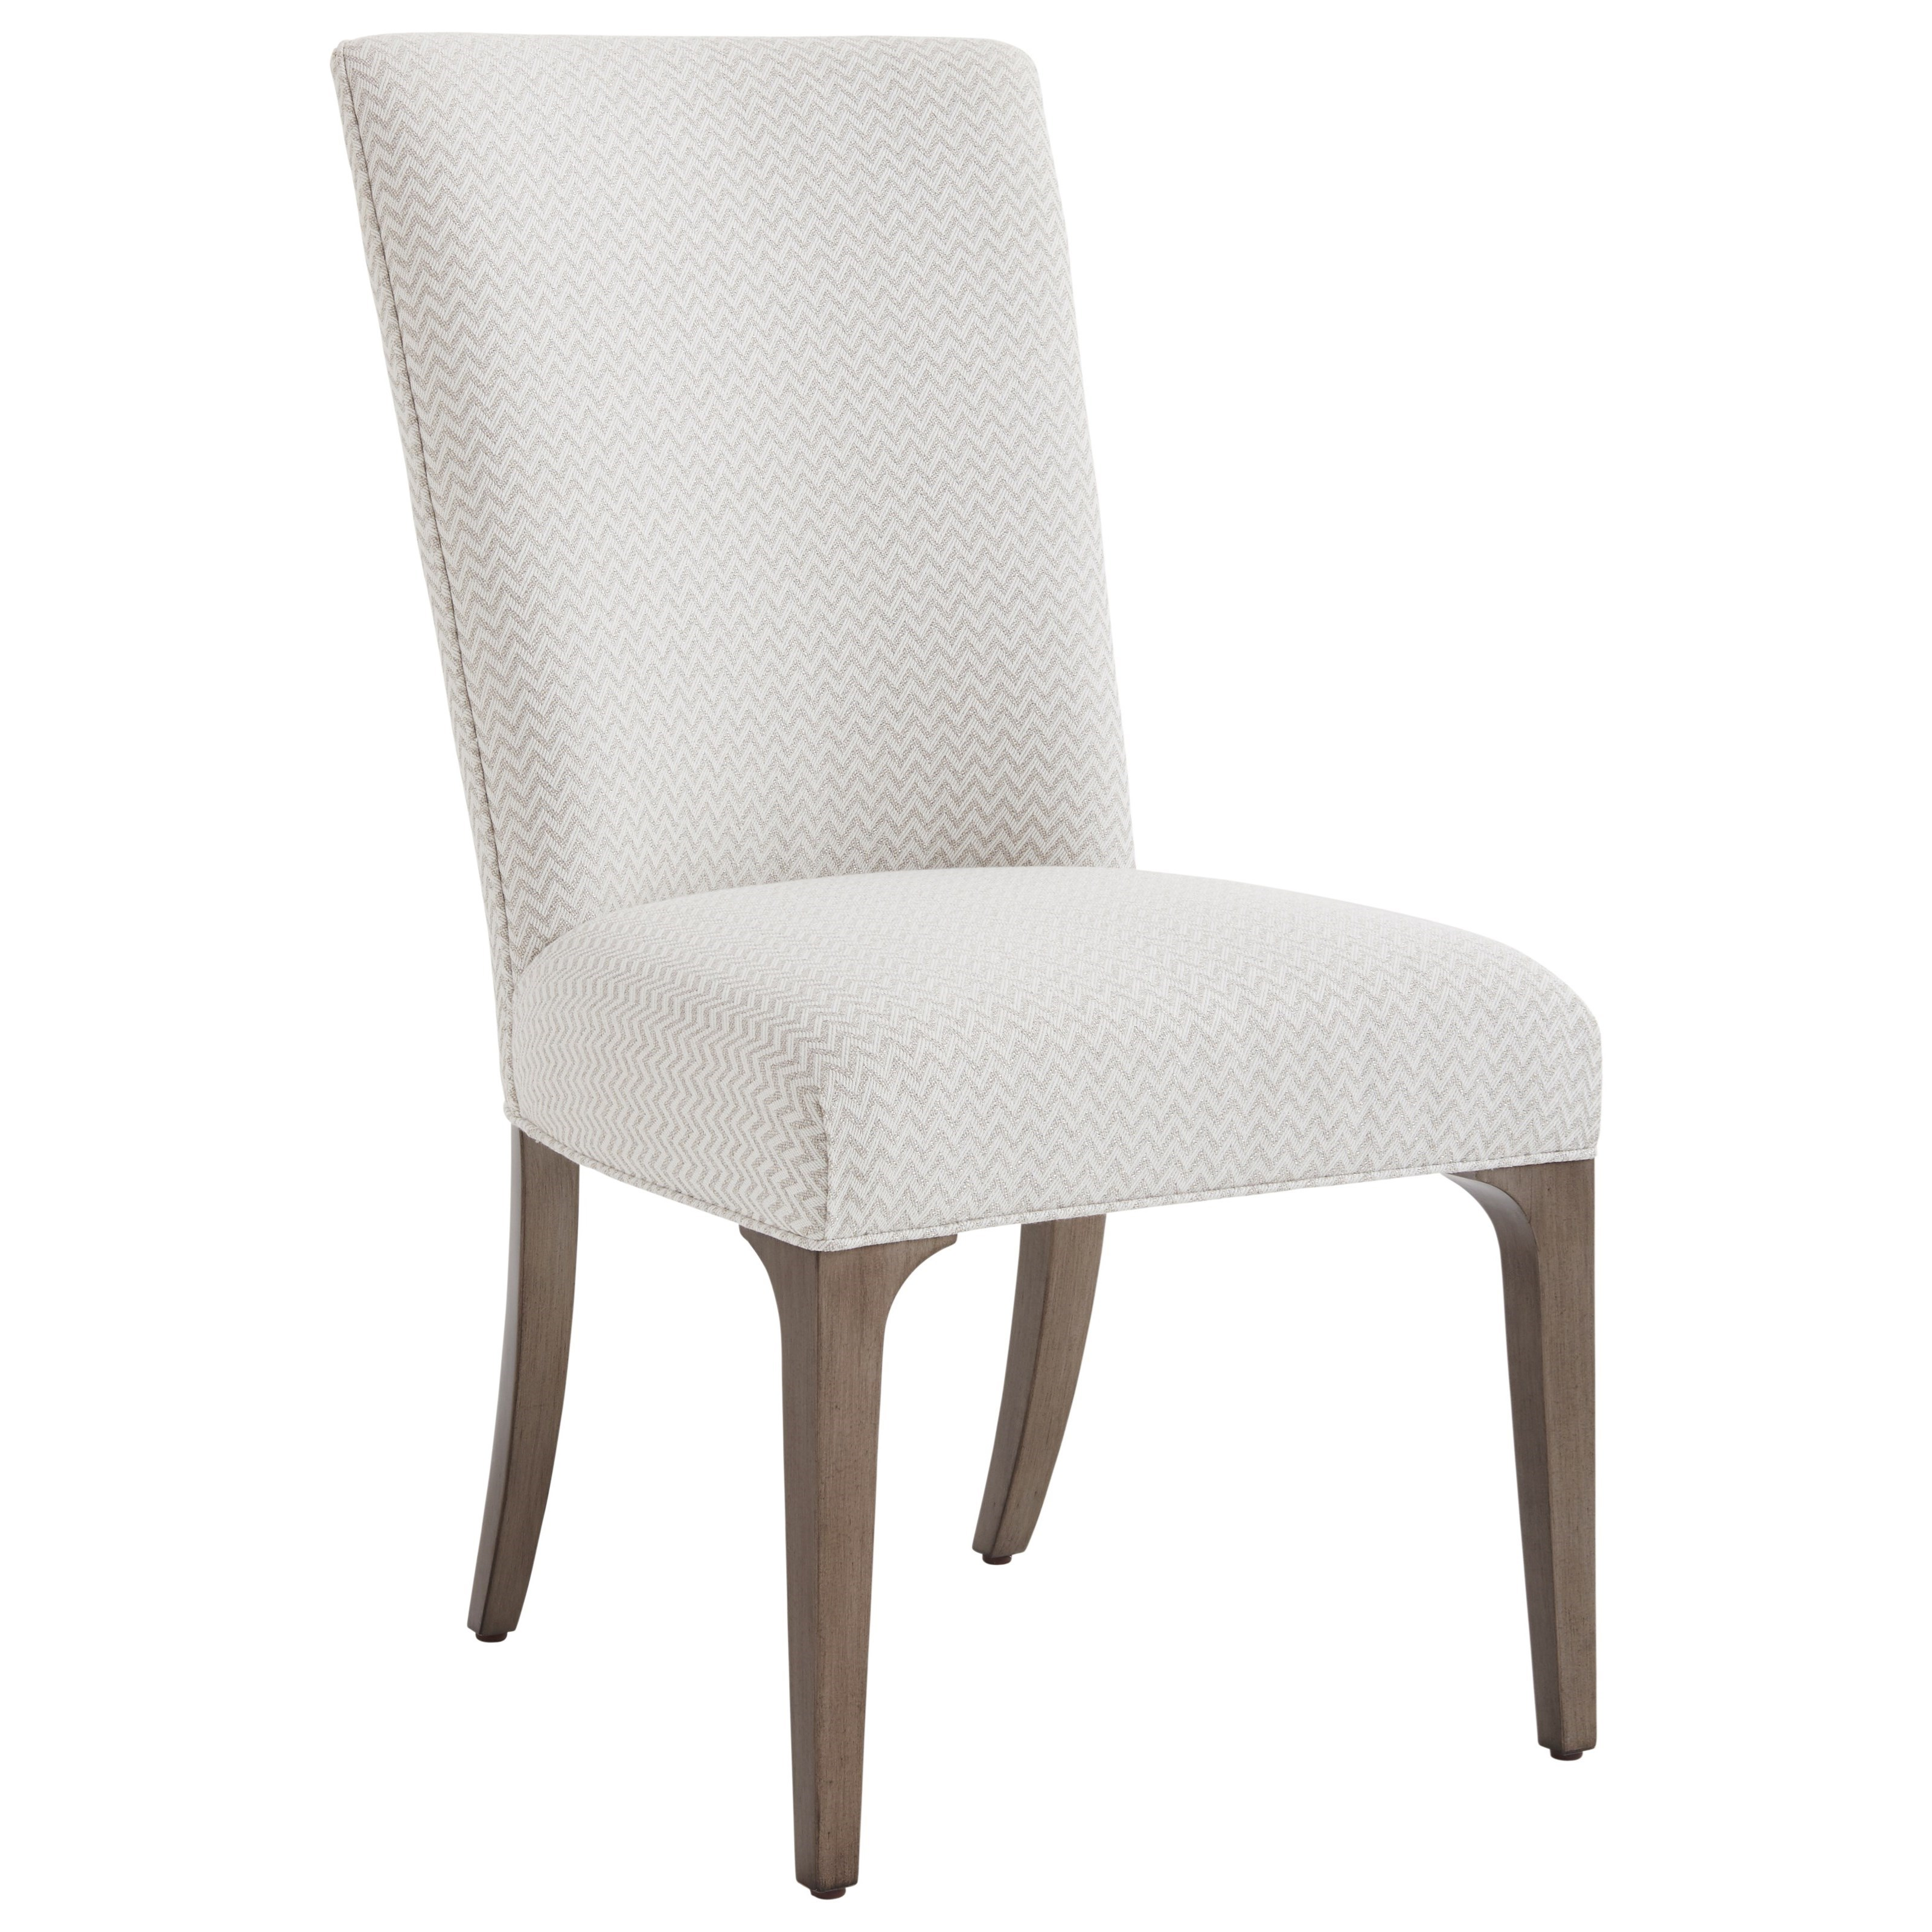 Ariana Bellamy Upholstered Side Chair by Lexington at Baer's Furniture